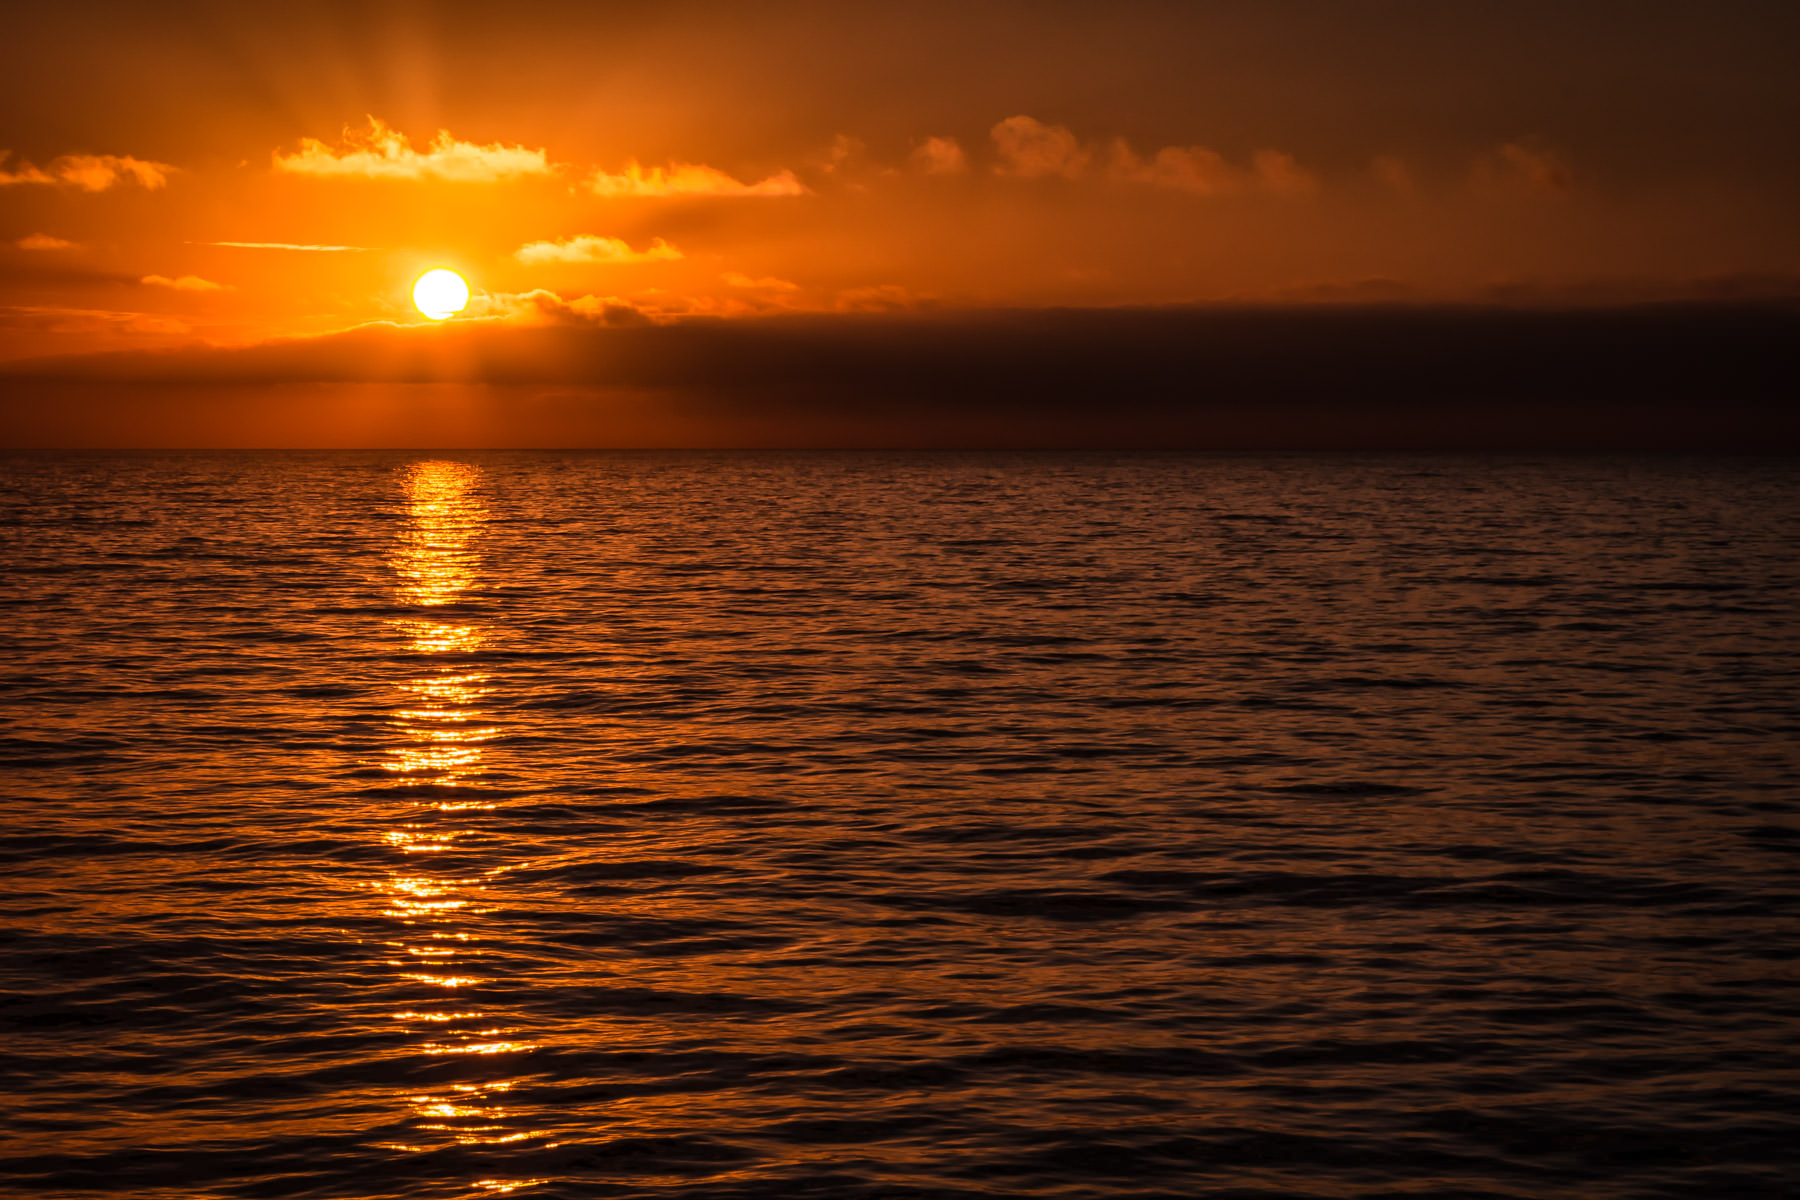 The sun sets on the Hecate Strait off the coast of the Queen Charlotte Islands, British Columbia, Canada.